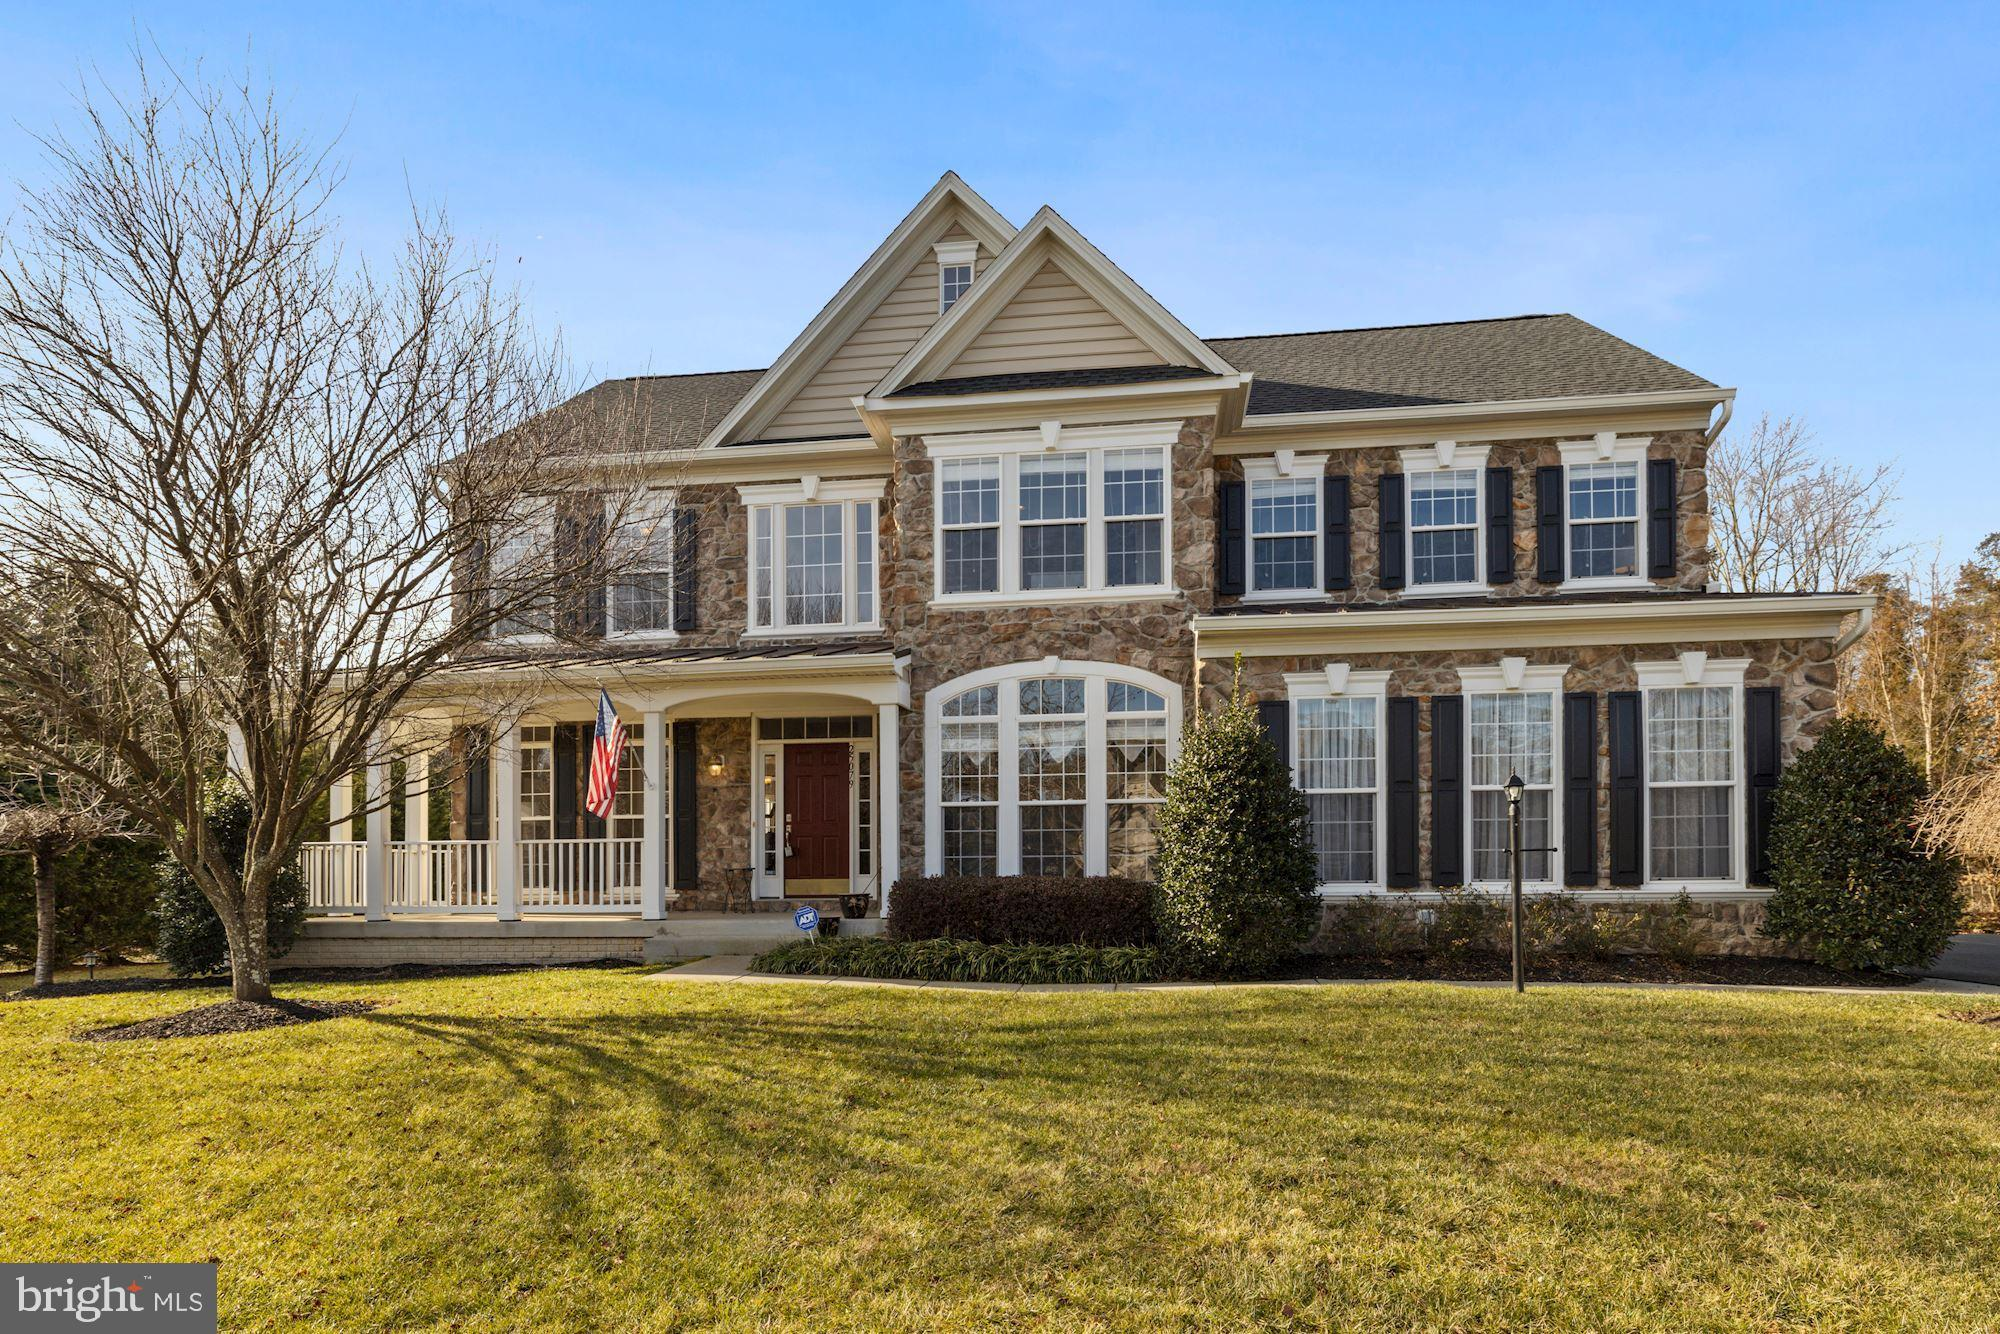 This beautiful Colonial home features a grand 2 story foyer, formal living, and dining room, plus a